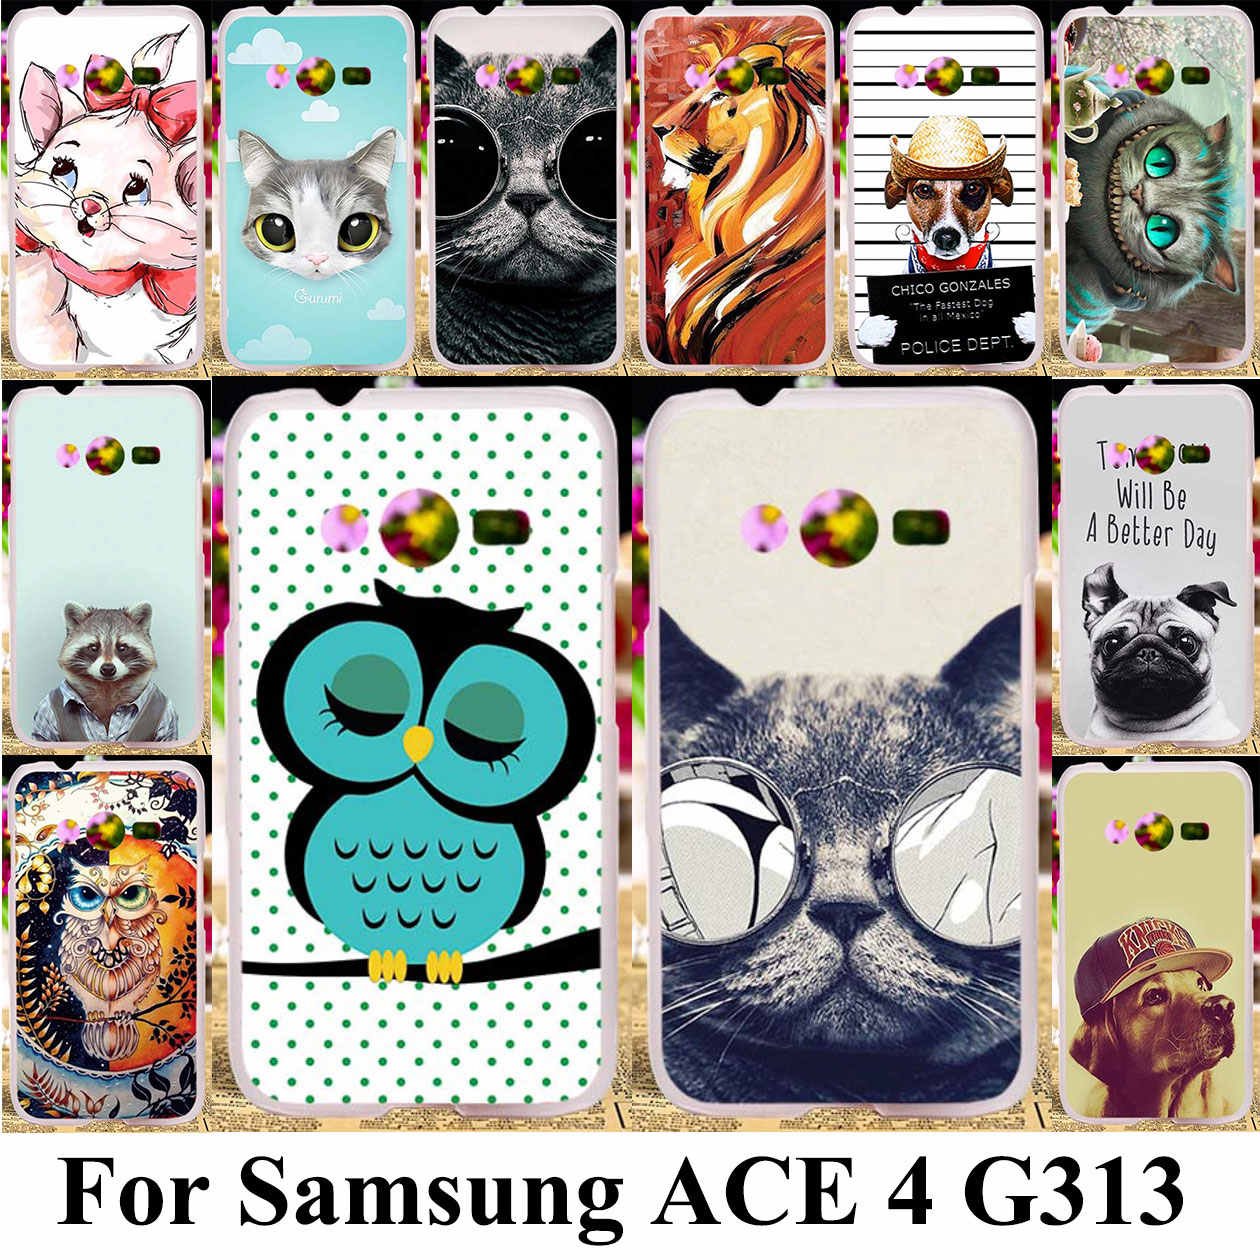 3D DIY Silicone Plastic Phone Case For Samsung Galaxy ACE 4 NXT G313 G318H Trend 2 Lite G313H SM-G313H G318F Cat Bag Shell